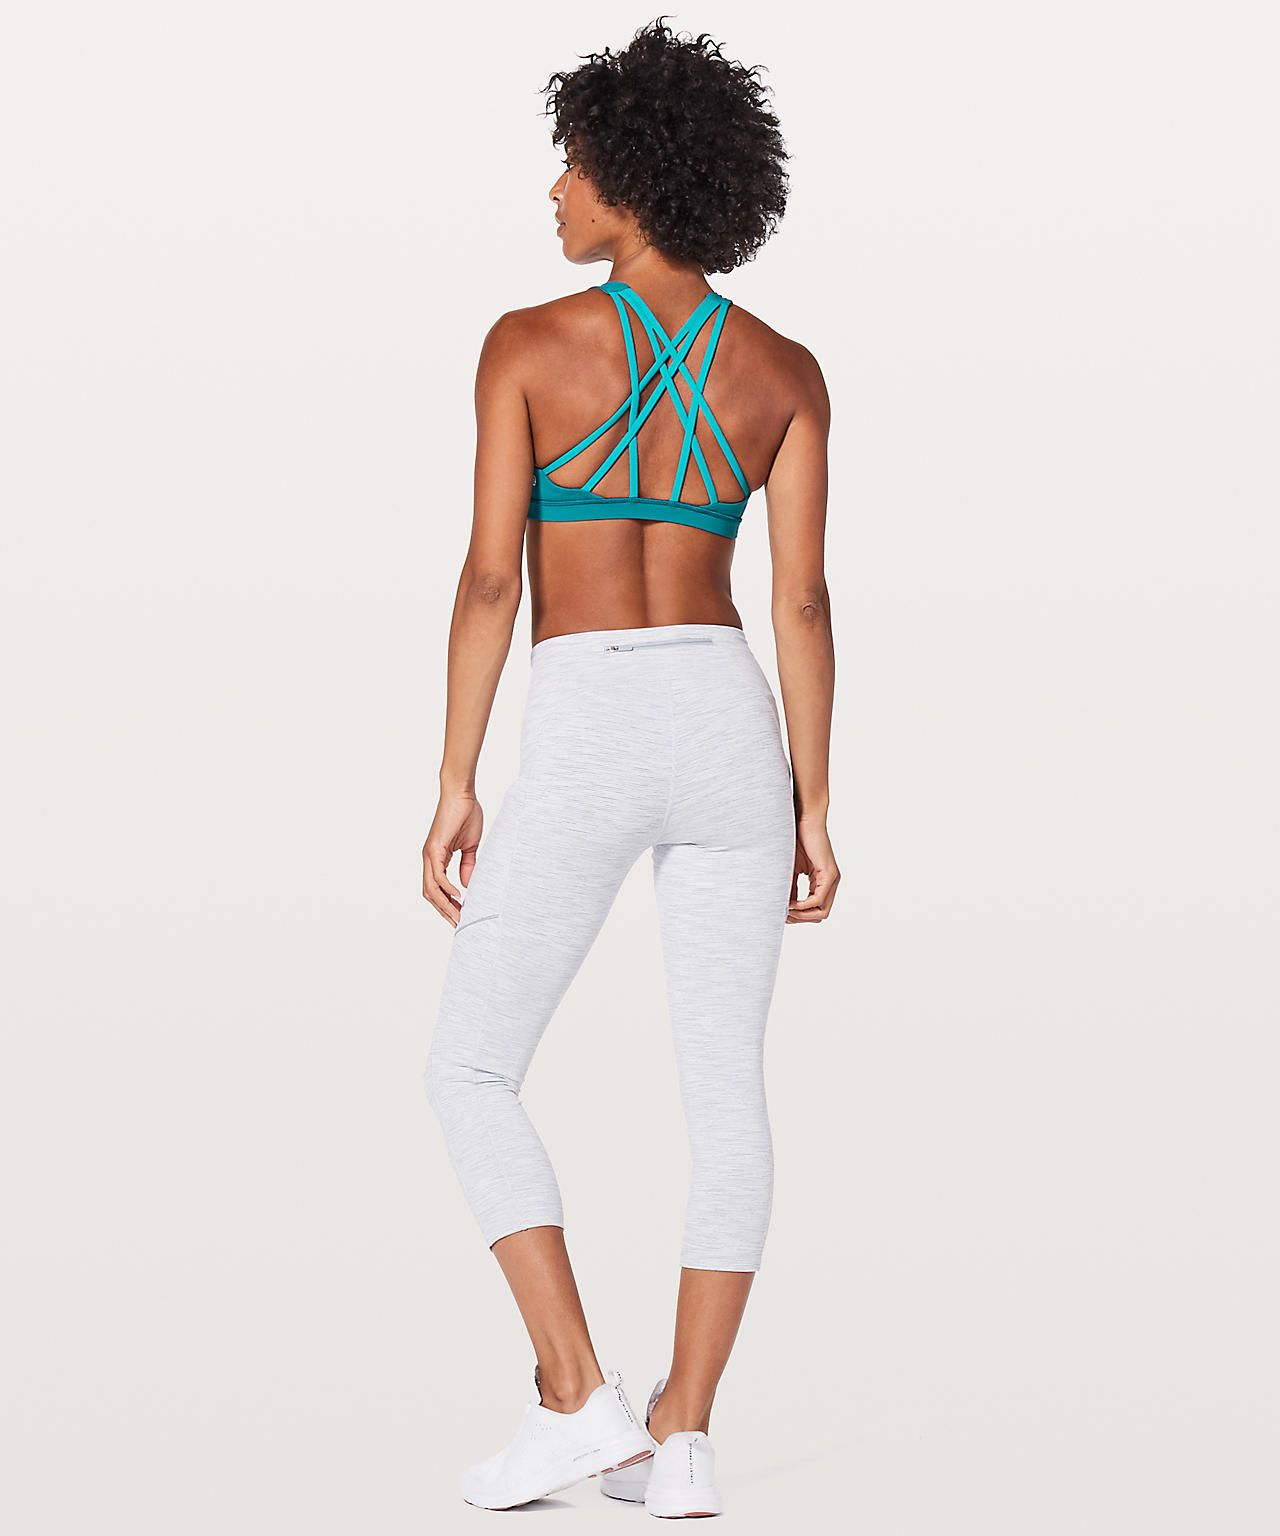 3c029b70e Free to Be Serene High Neck Pacific Teal/Teal Blue | Lululemon ...